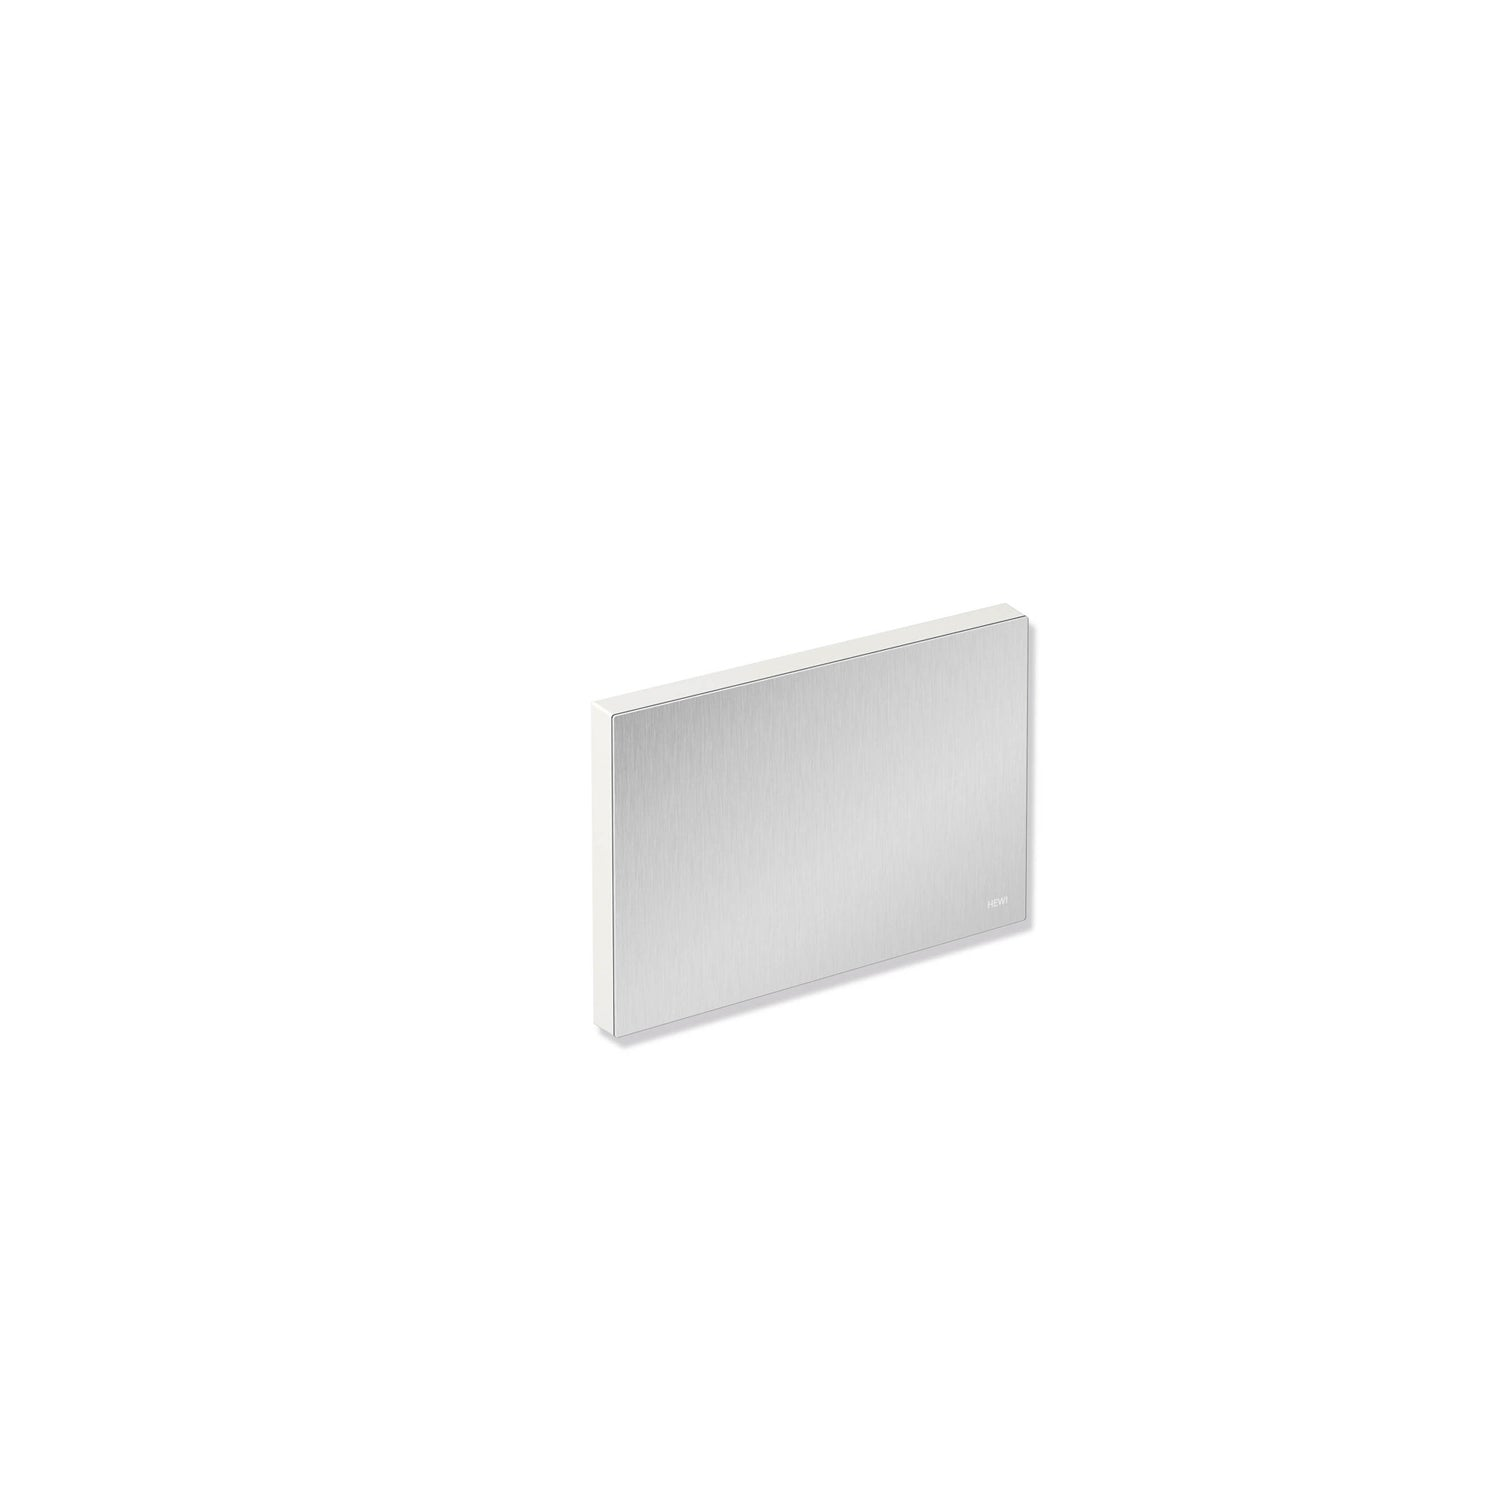 Freestyle Removable Shower Seat Cover with a satin steel finish on a white background